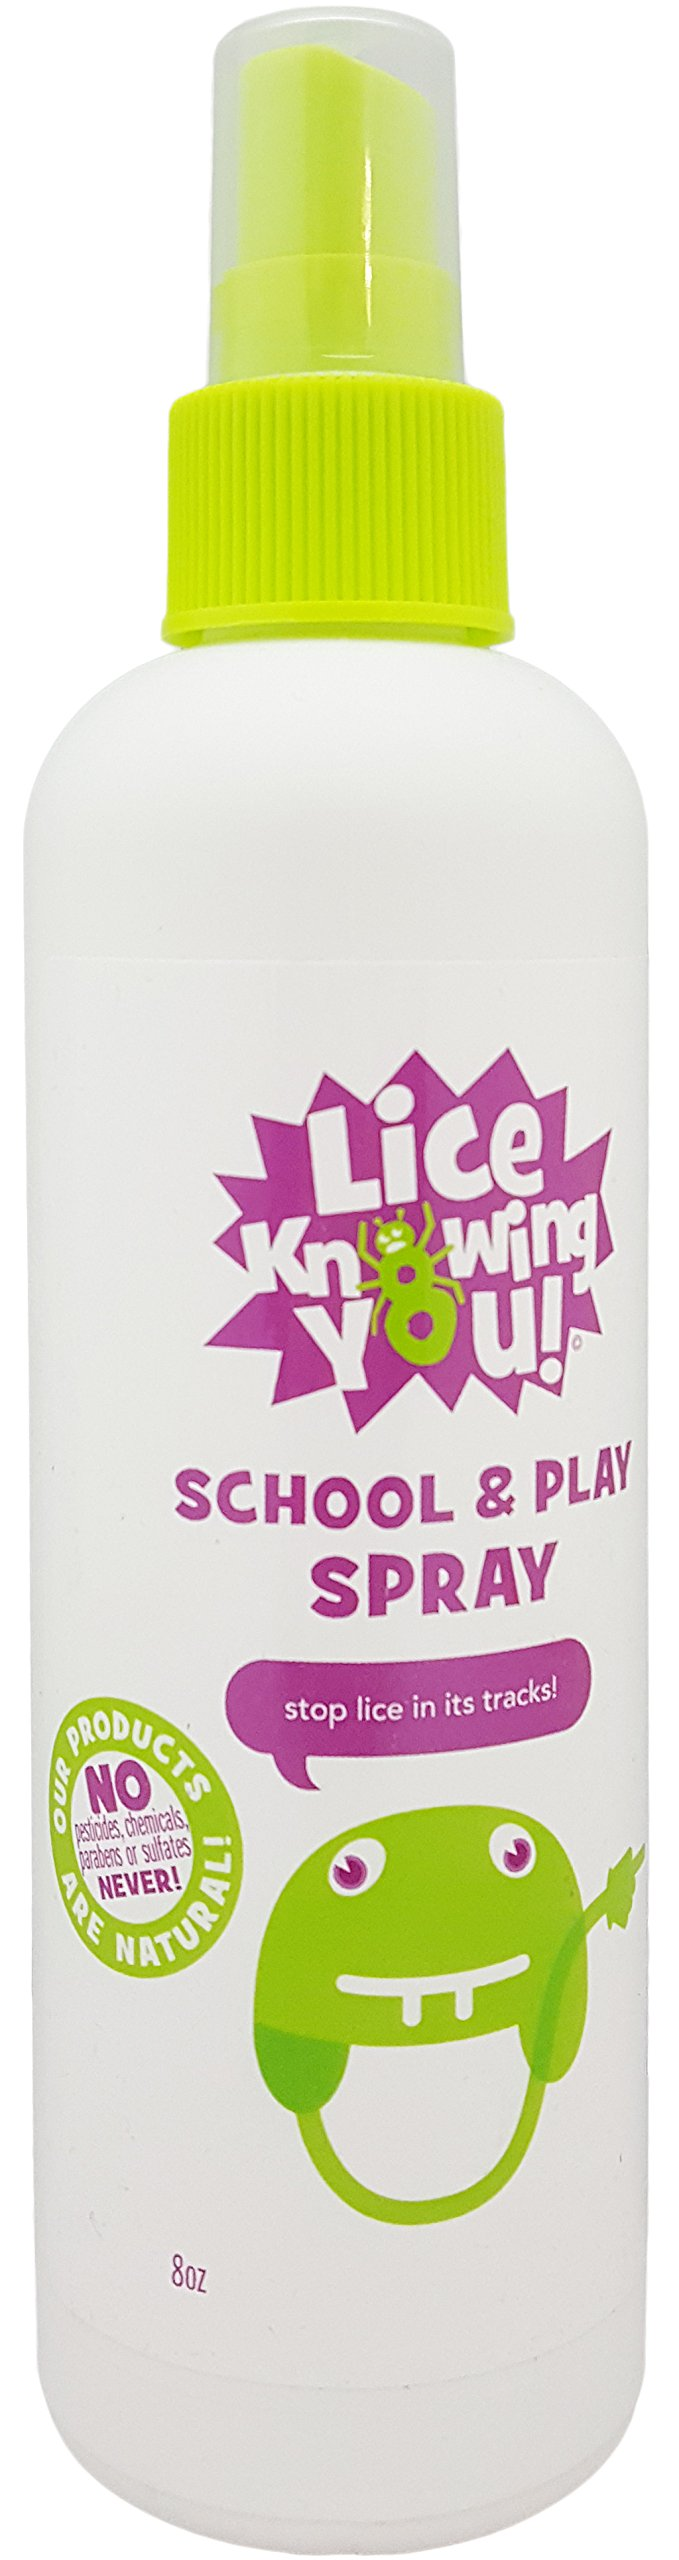 Lice Knowing You School and Play Spray 8 oz NEW